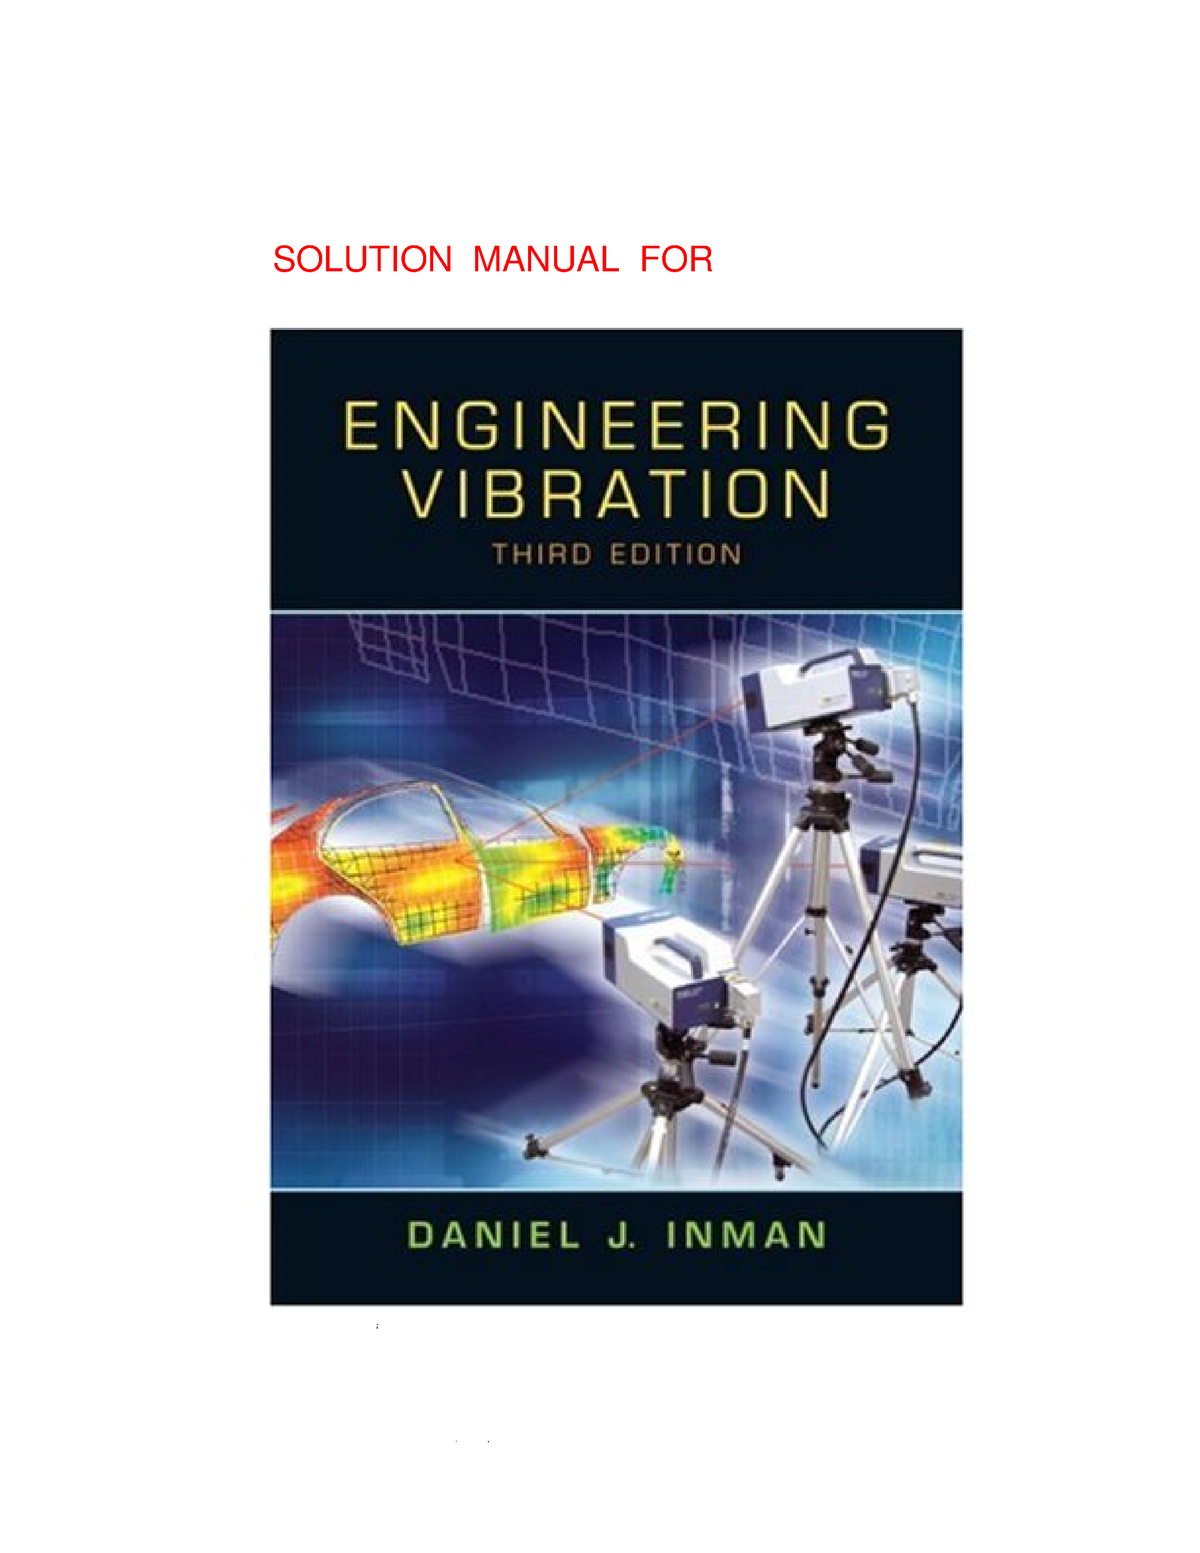 engineering vibrations by daniel j. inman free download